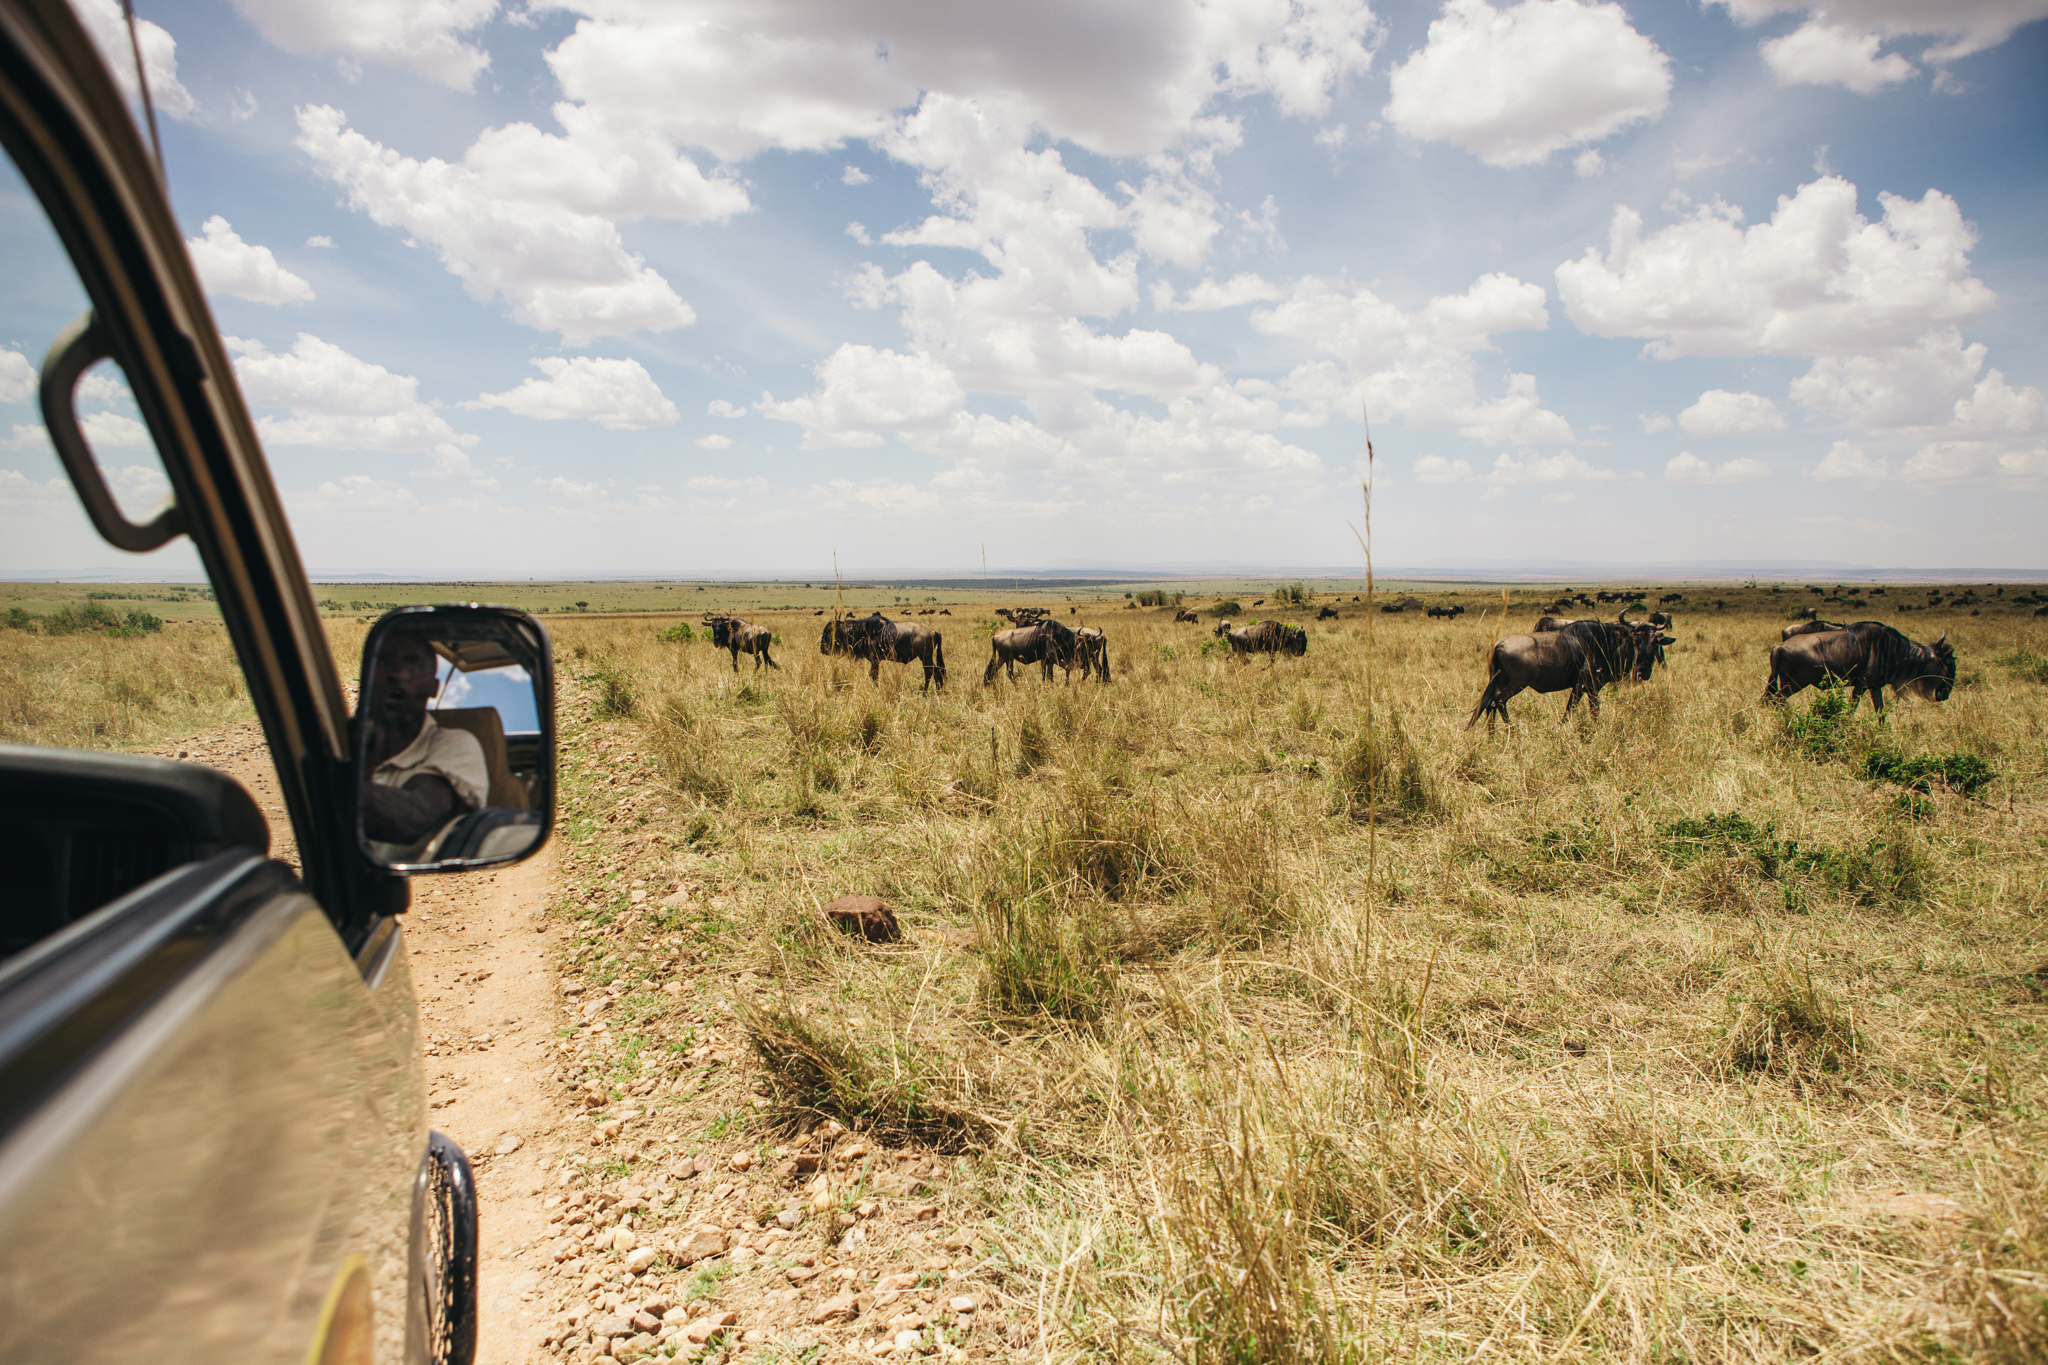 We were so fortunate to be there for wildebeest season!